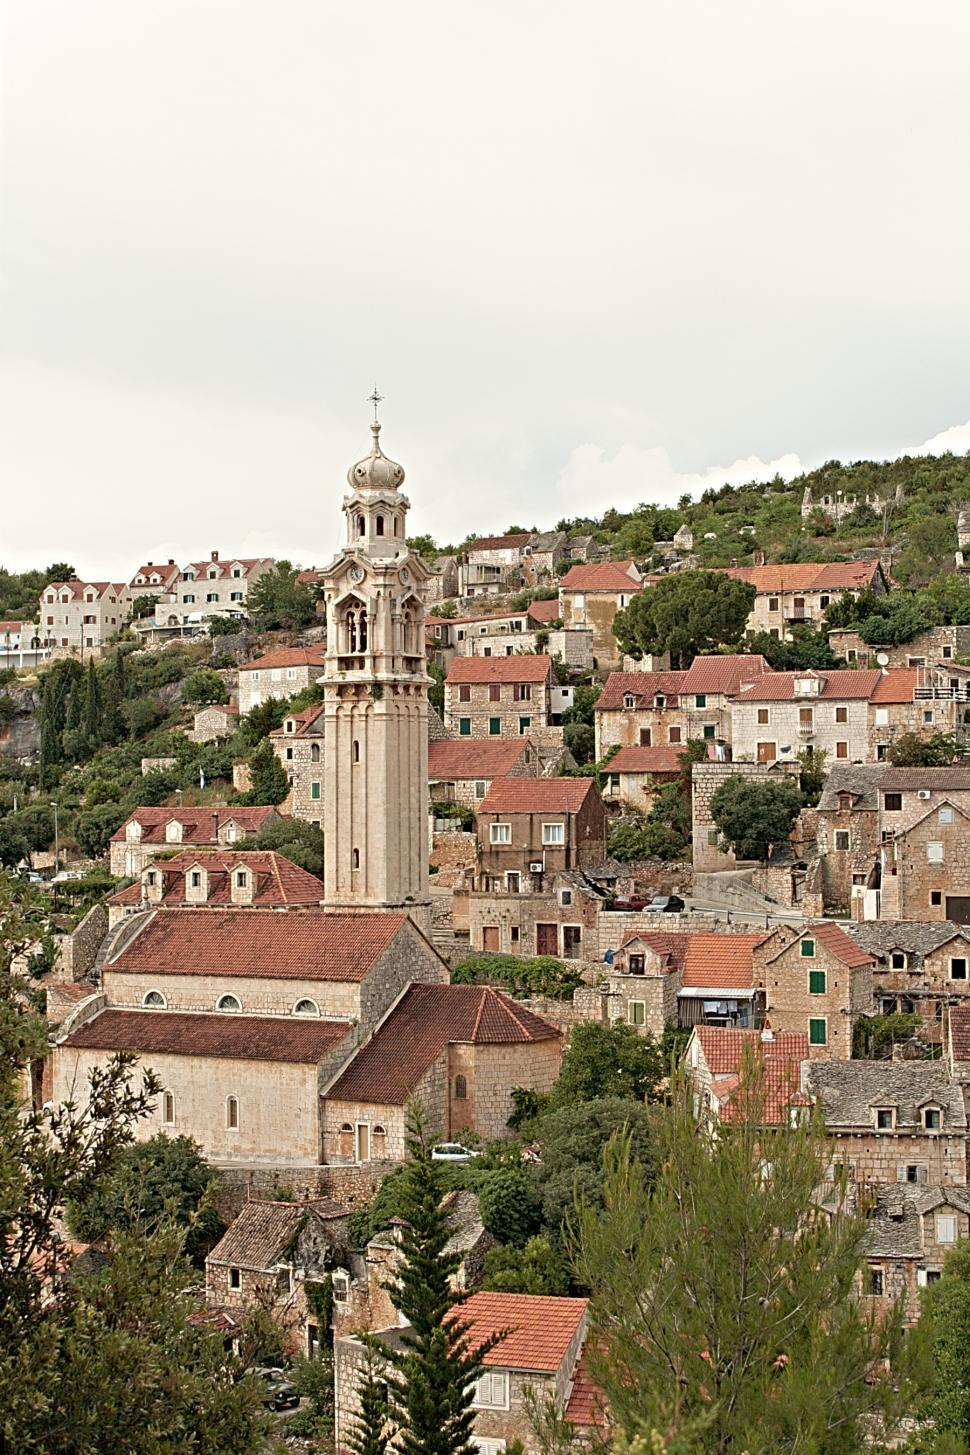 Download Free Stock HD Photo of Dalmatian town Online